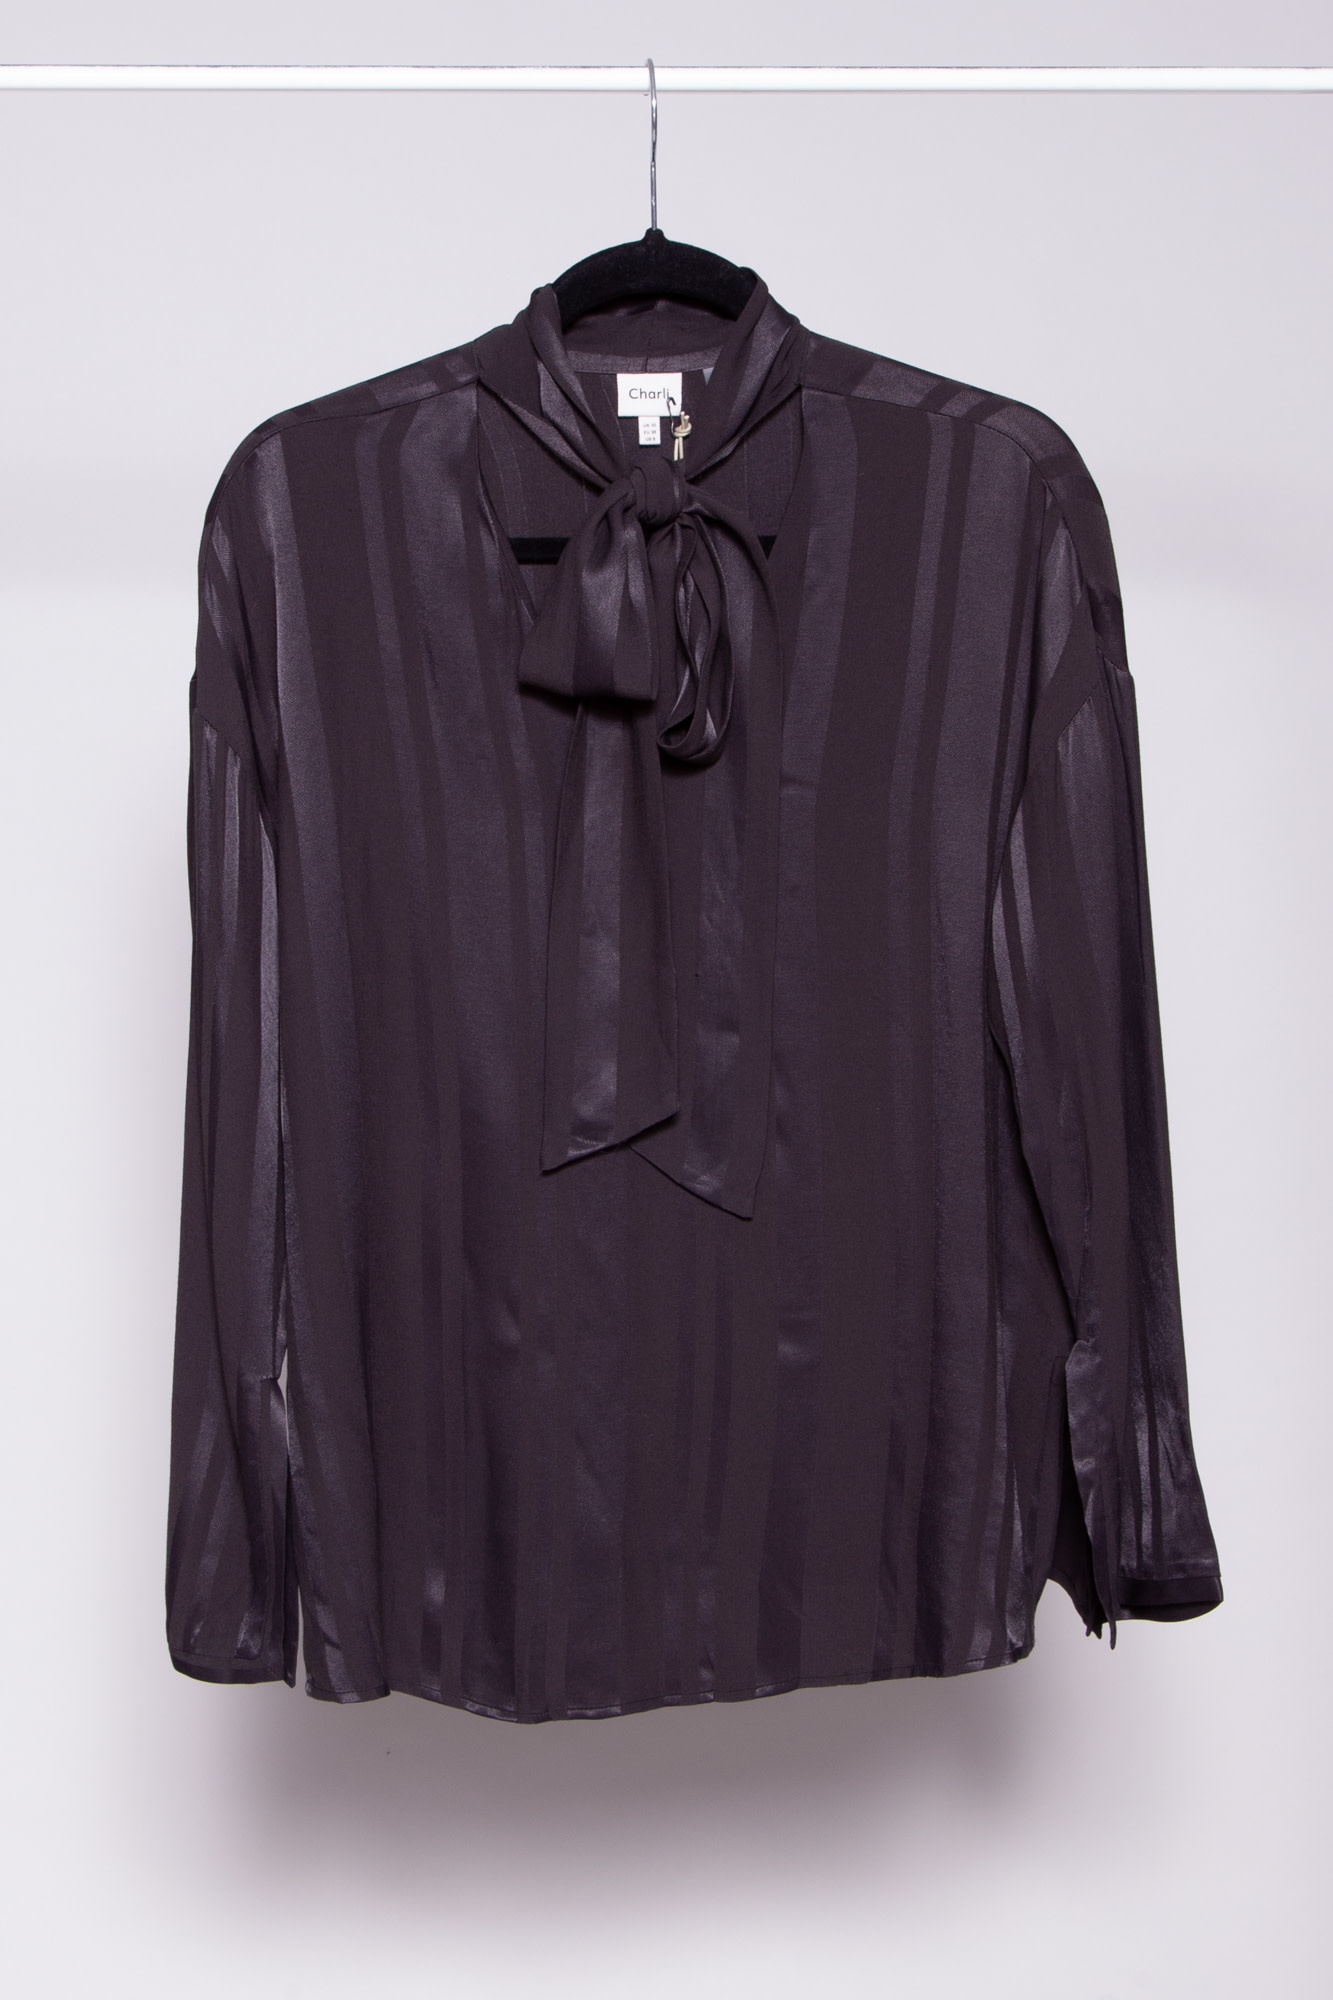 Charli BLACK BLOUSE WITH PUSSYBOW - NEW WITH TAGS